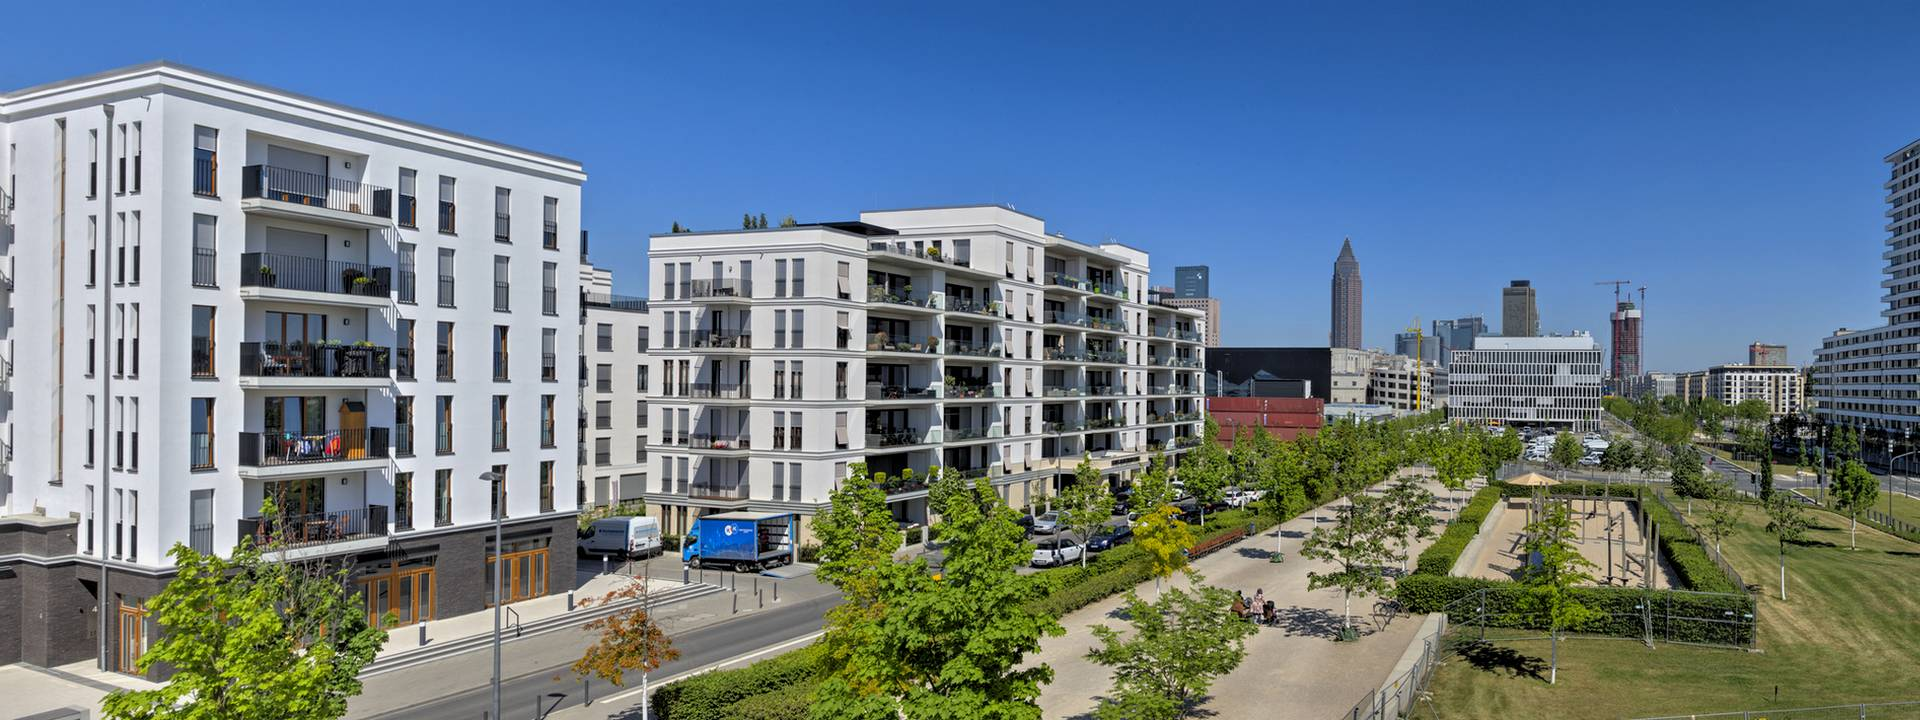 leithome-immobilien-wohnimmobilien-hannover